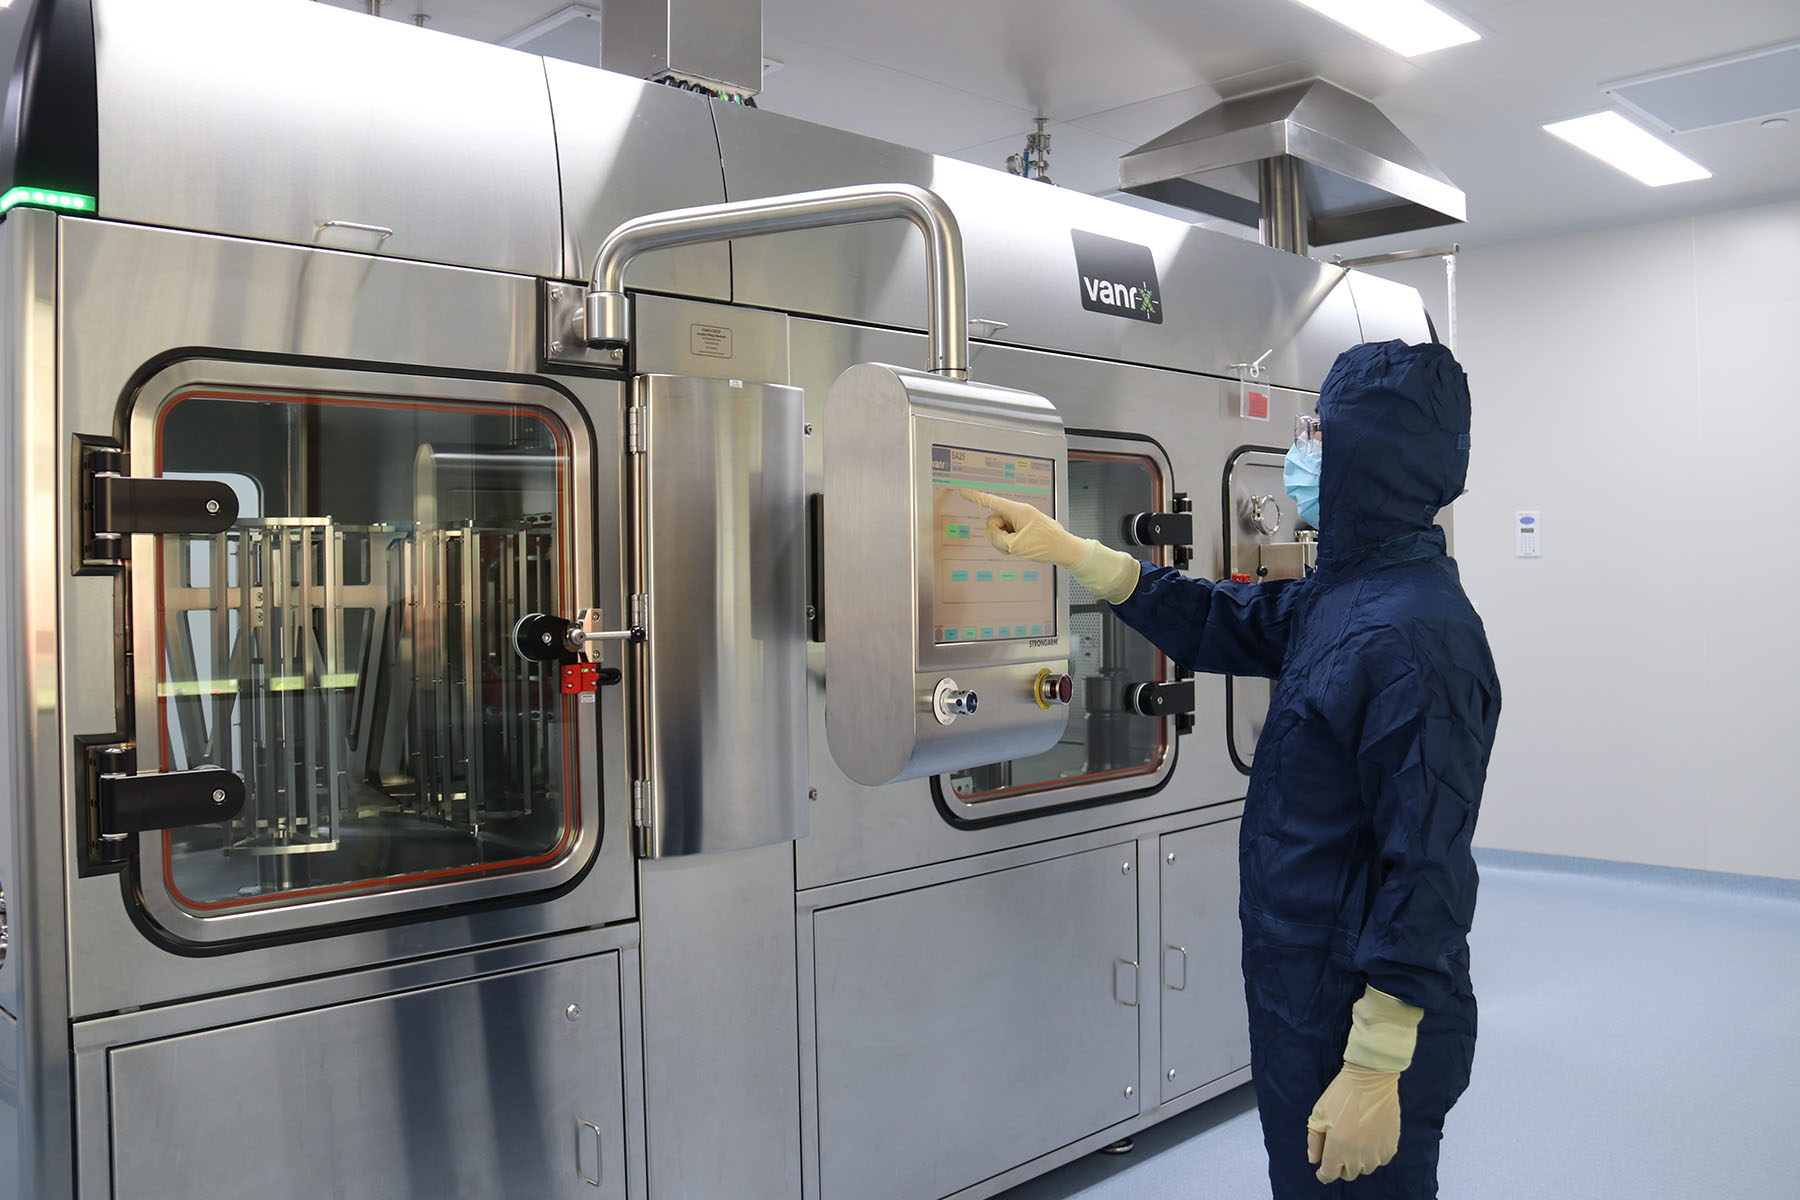 Vanrx SA25 Aseptic Filling Workcell installed in WuXi Biologics' DP4 facility.